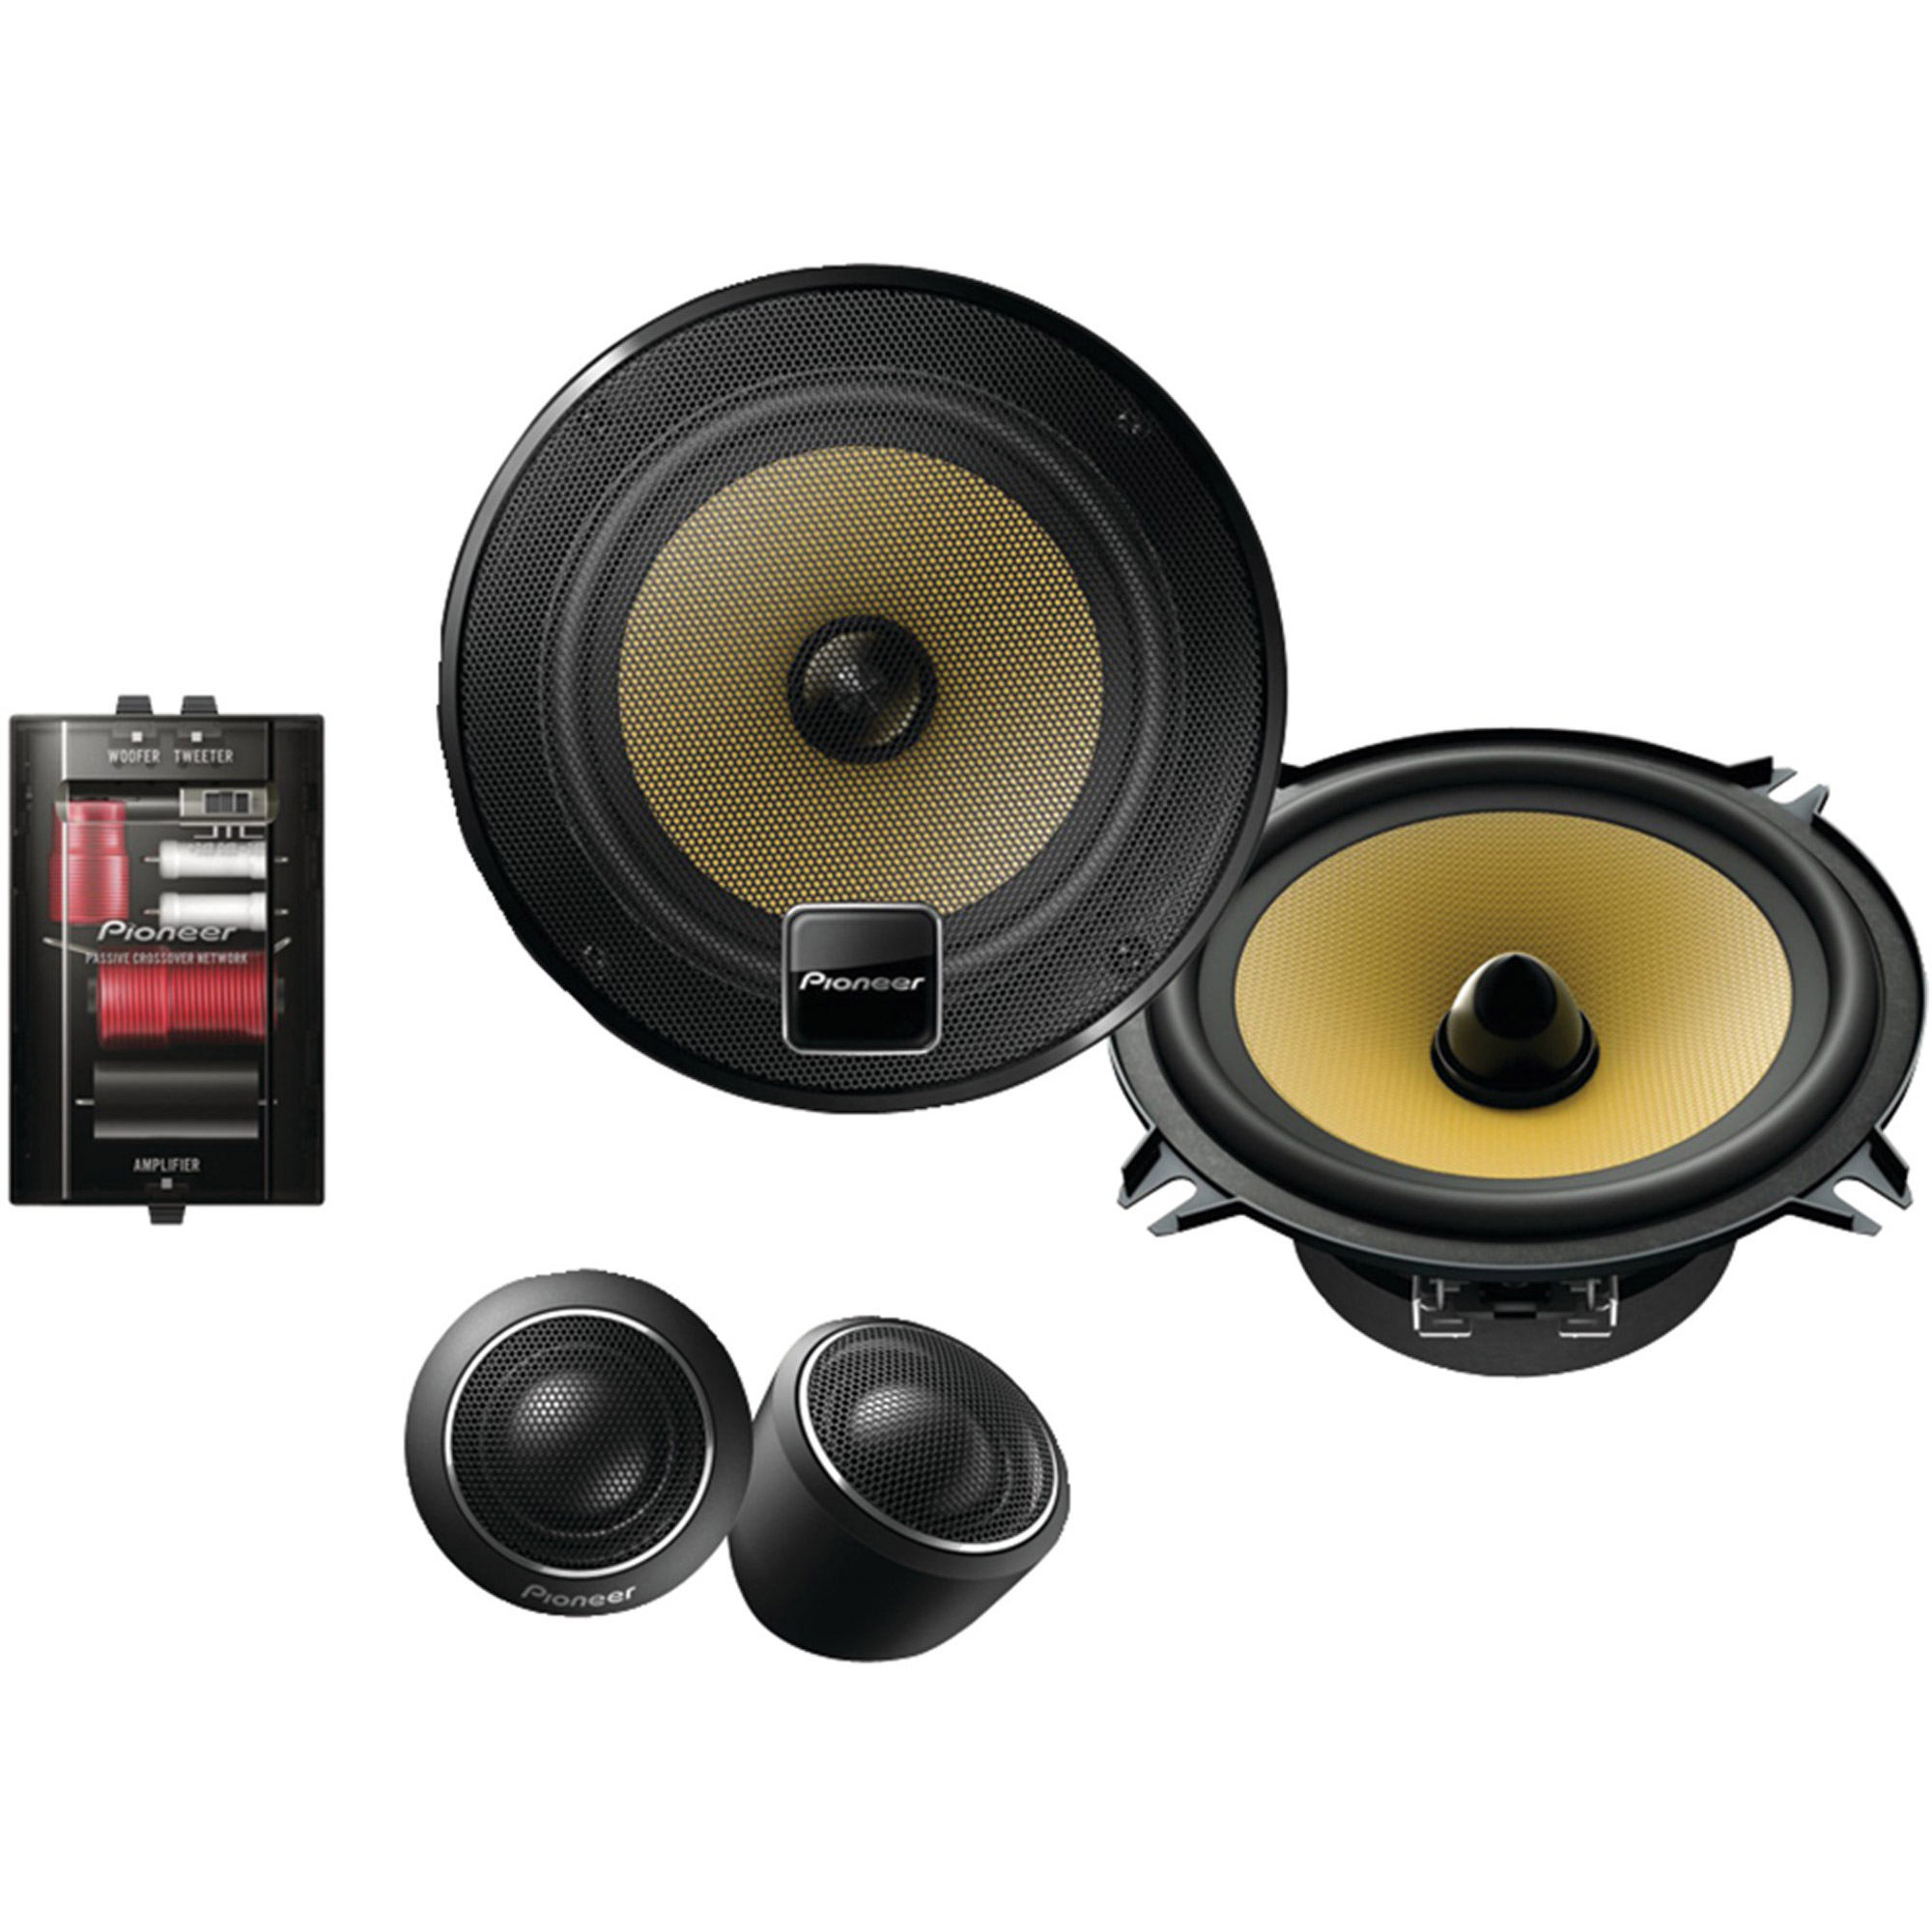 "Pioneer TS-D1330C 5.25"" D-Series 180W Component Speaker Package"